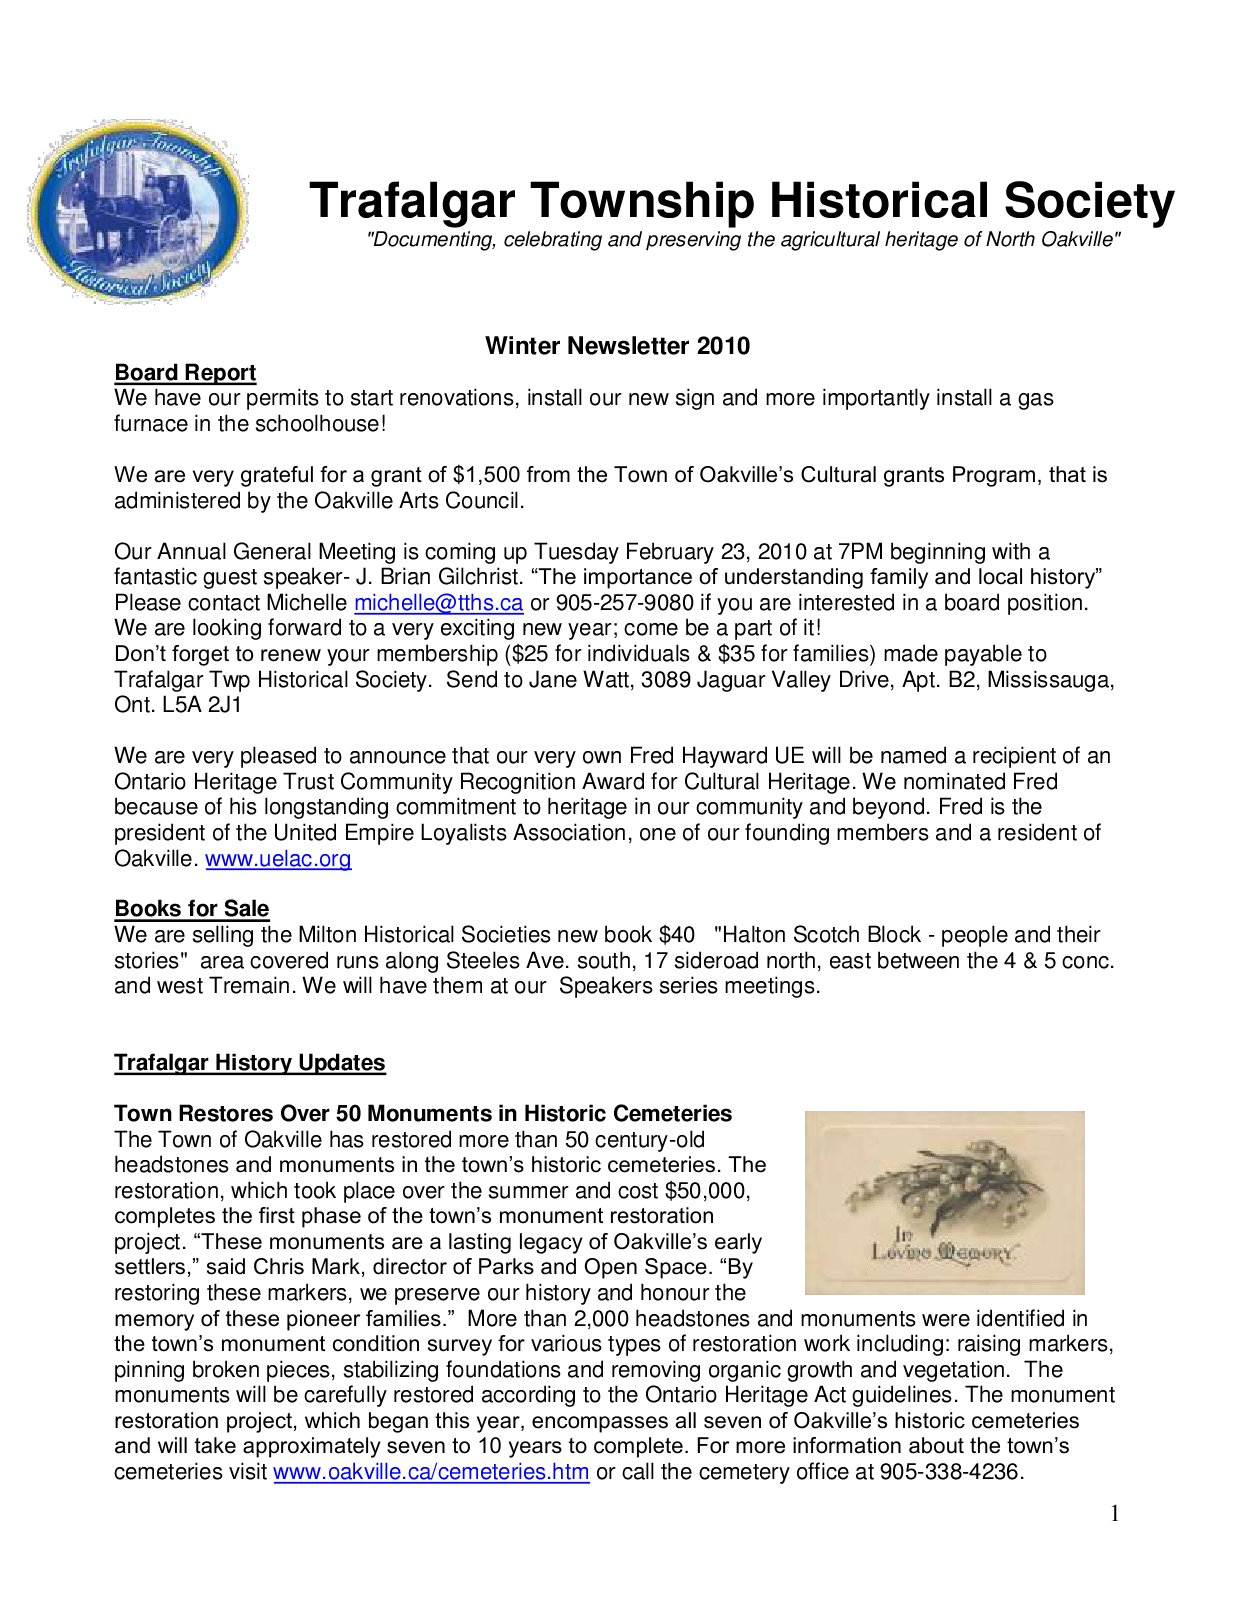 Historical Society Newsletter Templates